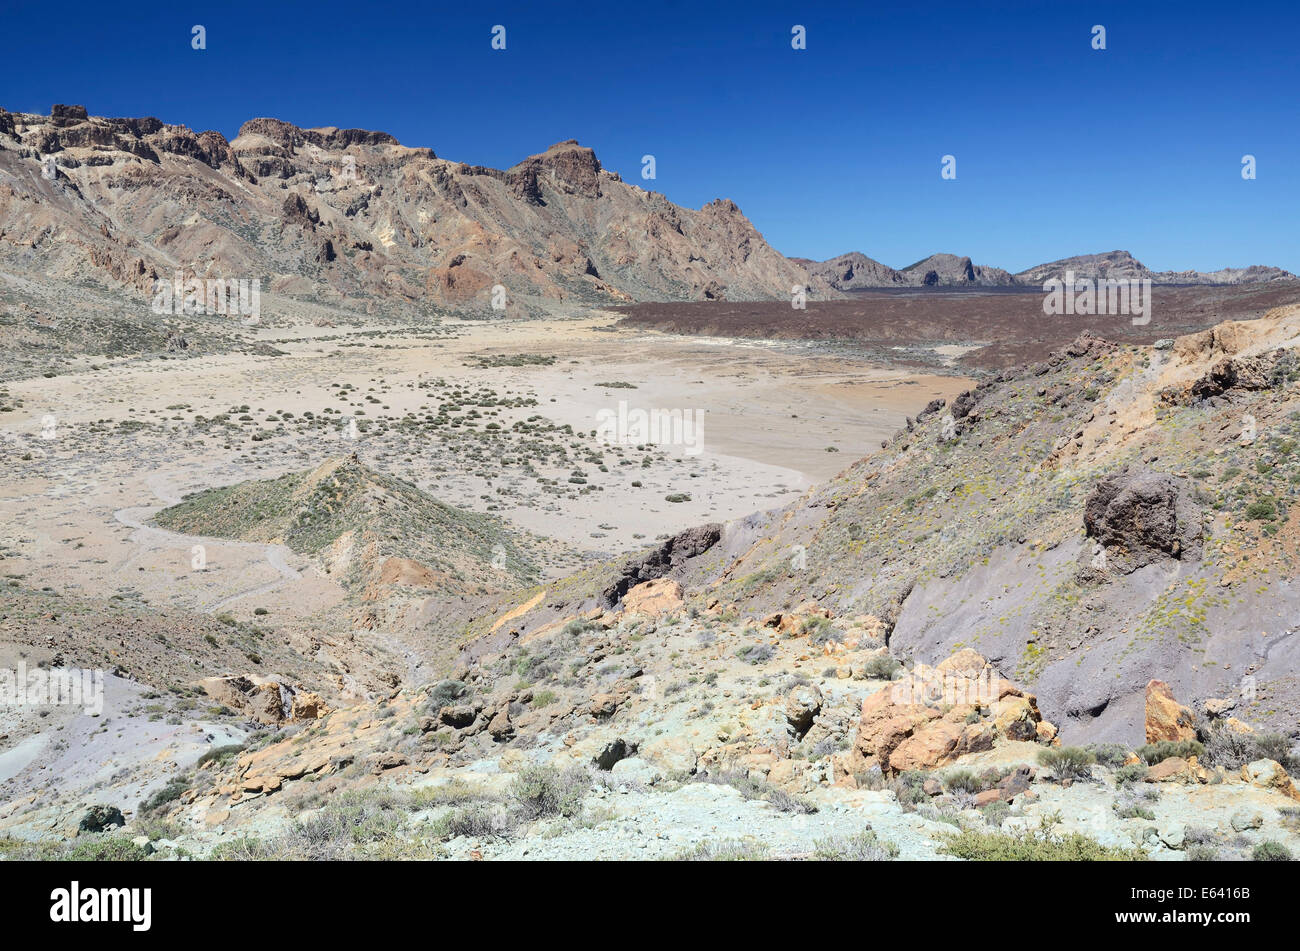 Collapse crater or caldera with lava fields in the Llano de Ucanca, with blue 'Los Azulejos' lava and macchia - Stock Image